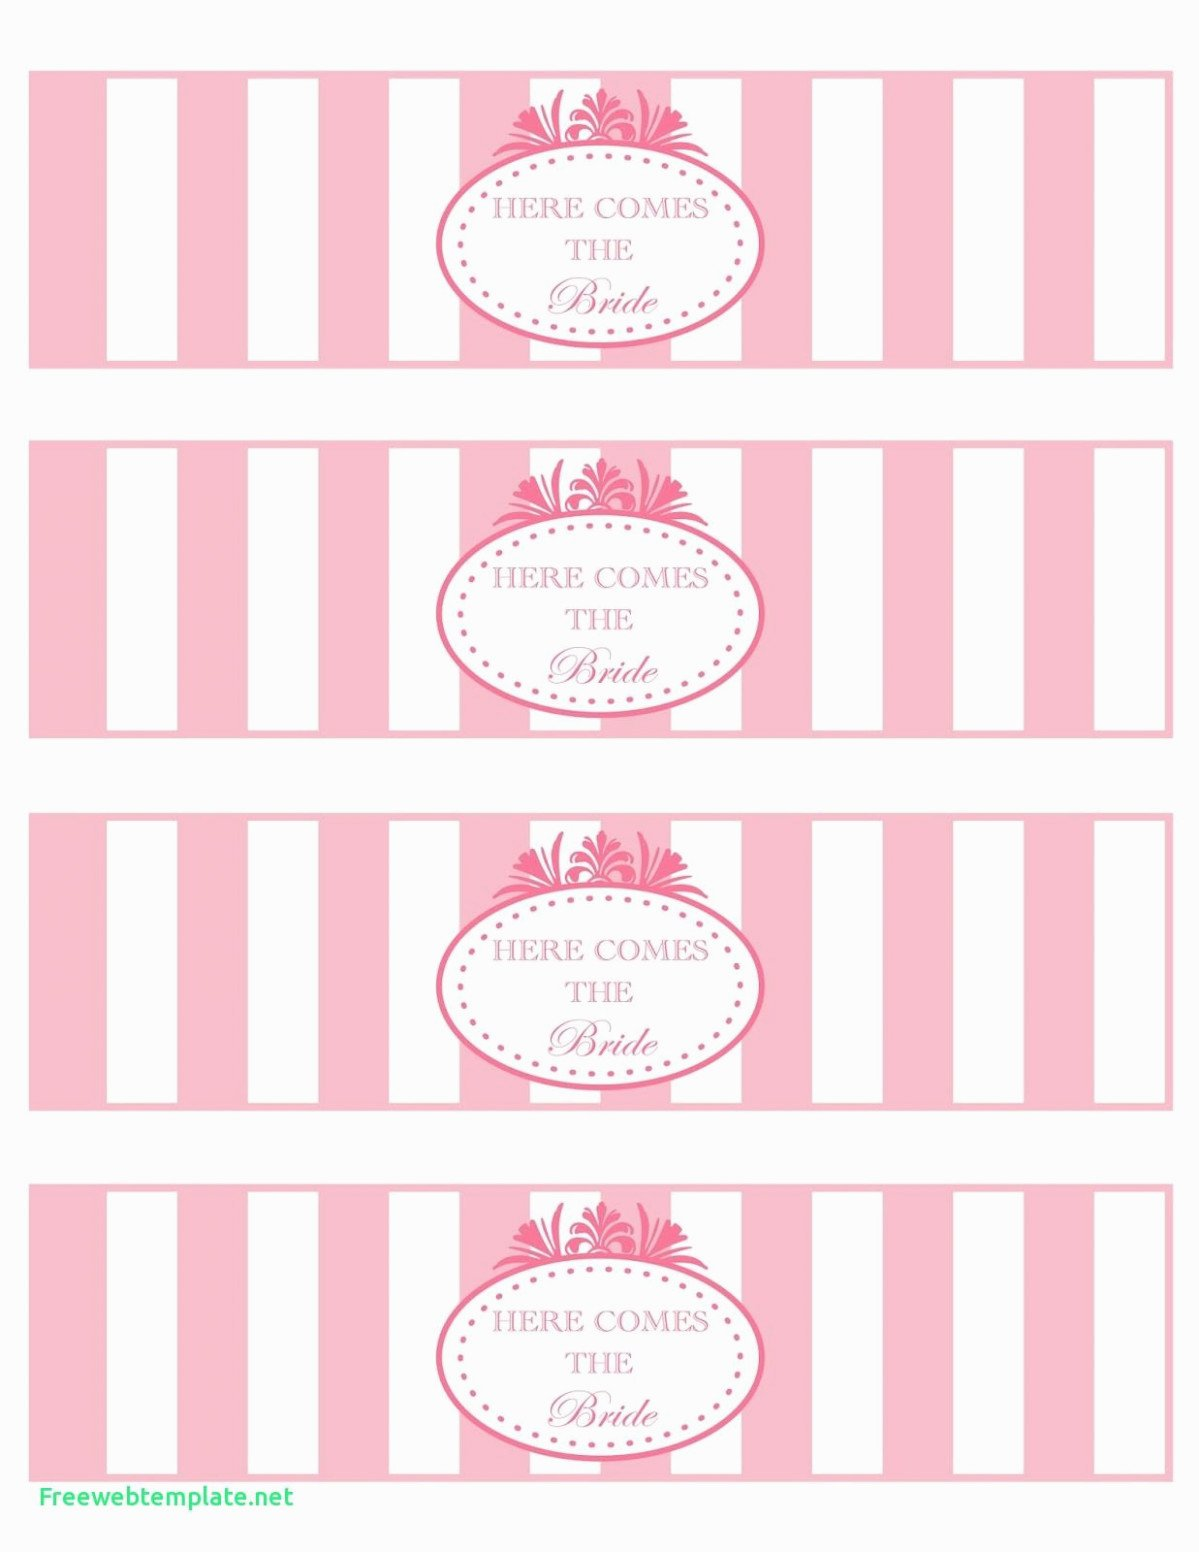 Bottle Label Template Free Beautiful 14 Free Printable Water Bottle